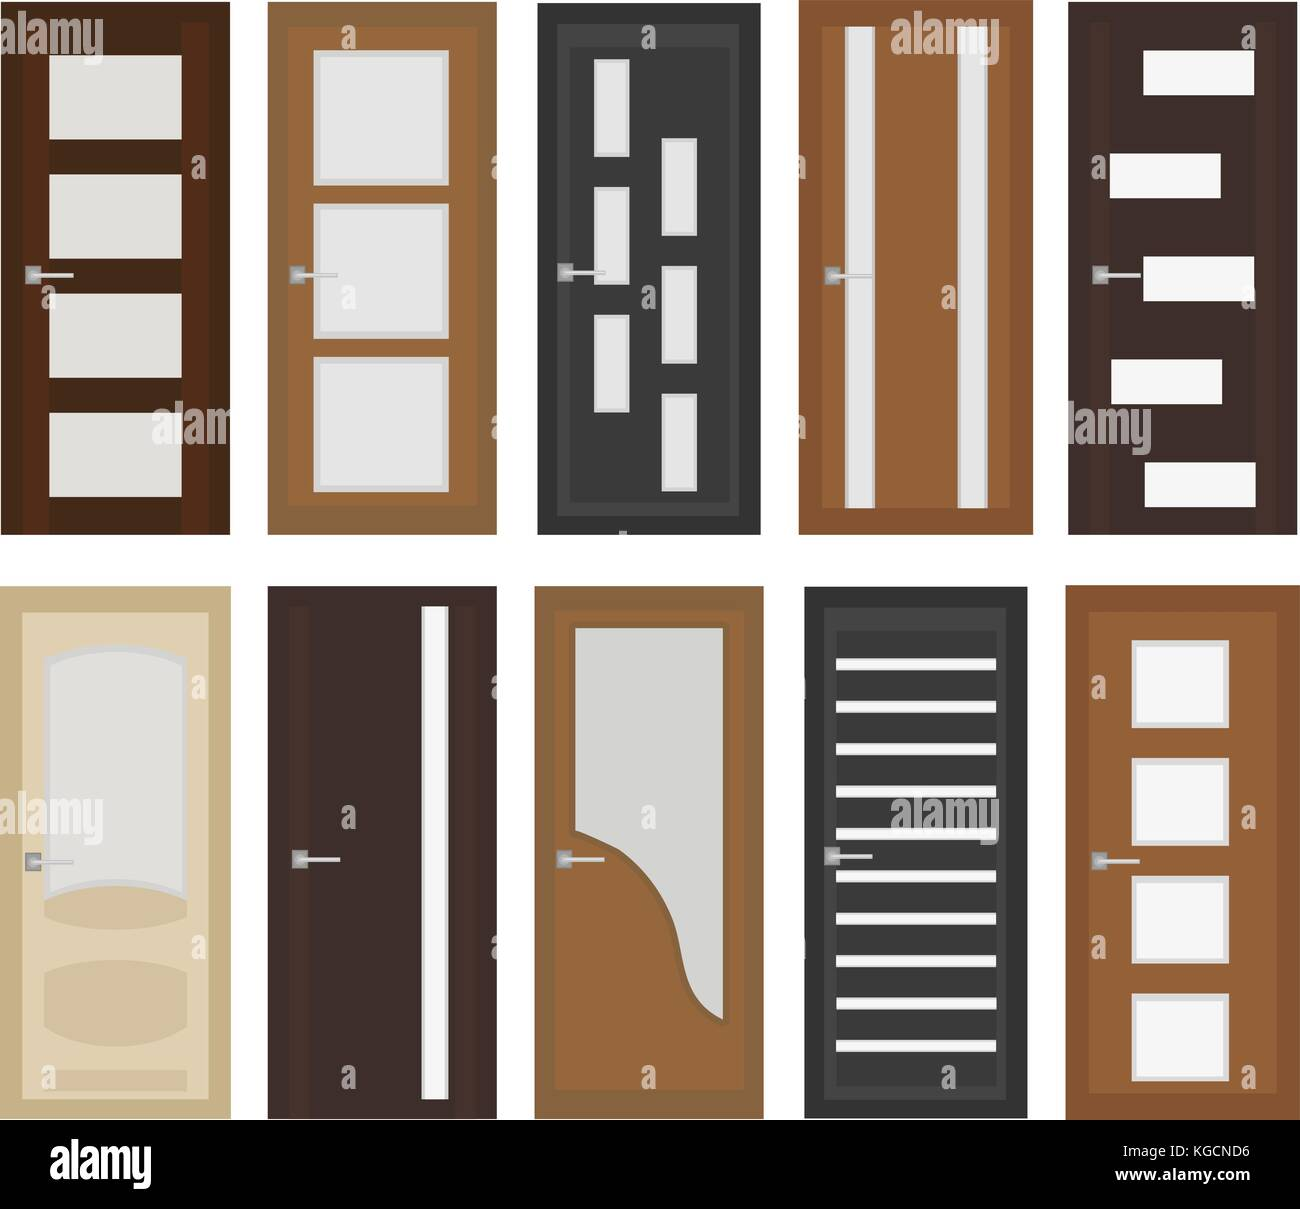 Different style exterior stock photos different style for Different types of interior doors